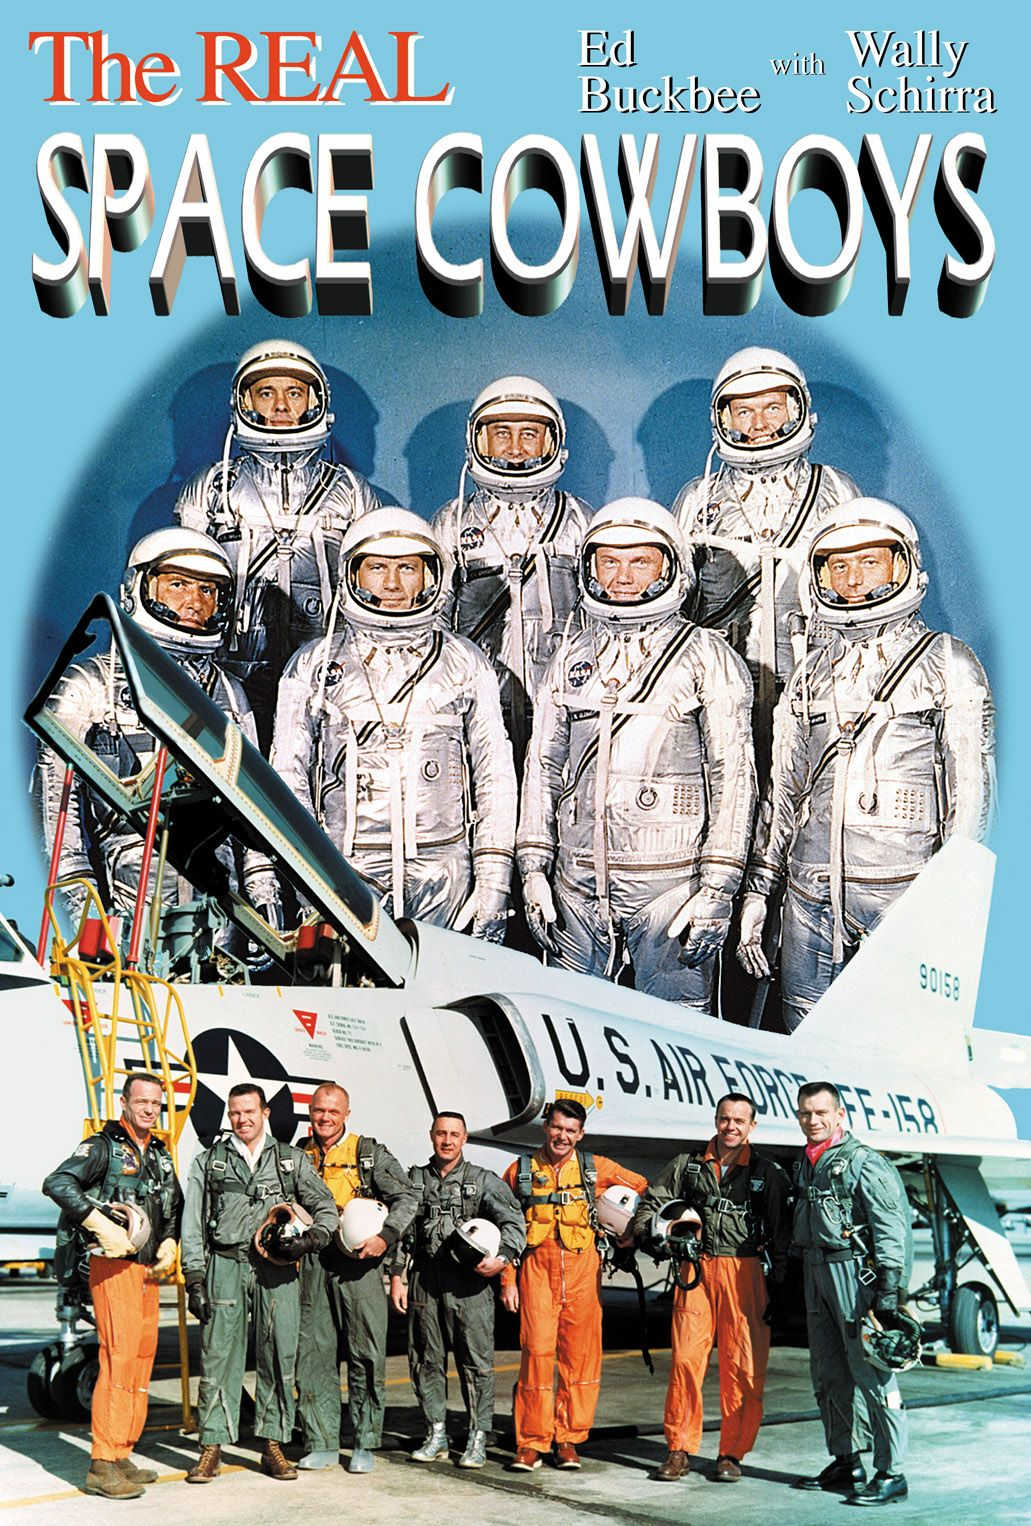 Mercury 7 Astronauts (With images) | Space exploration ...